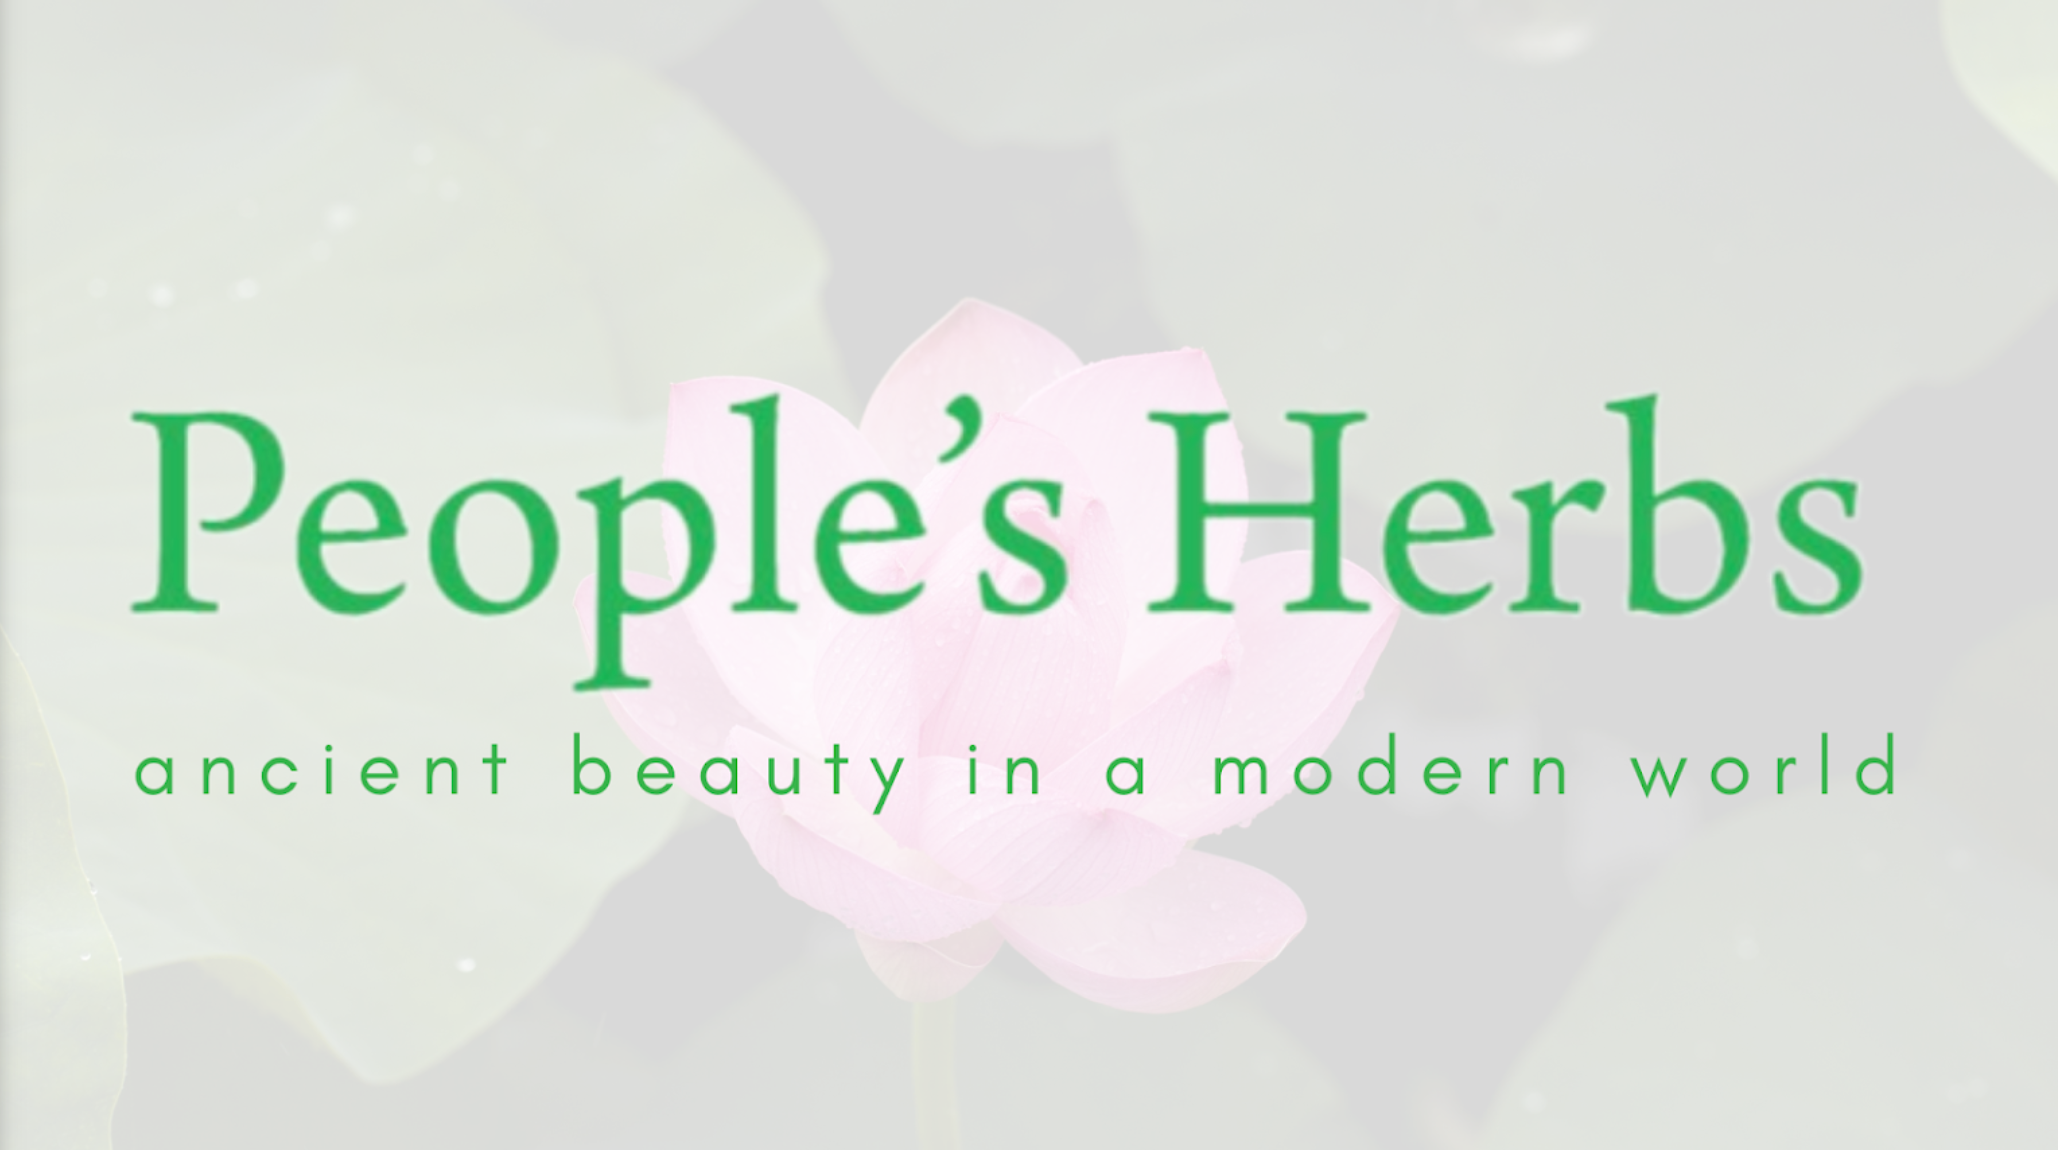 People's Herbs Brings Practitioner-Based Formulas to the Public